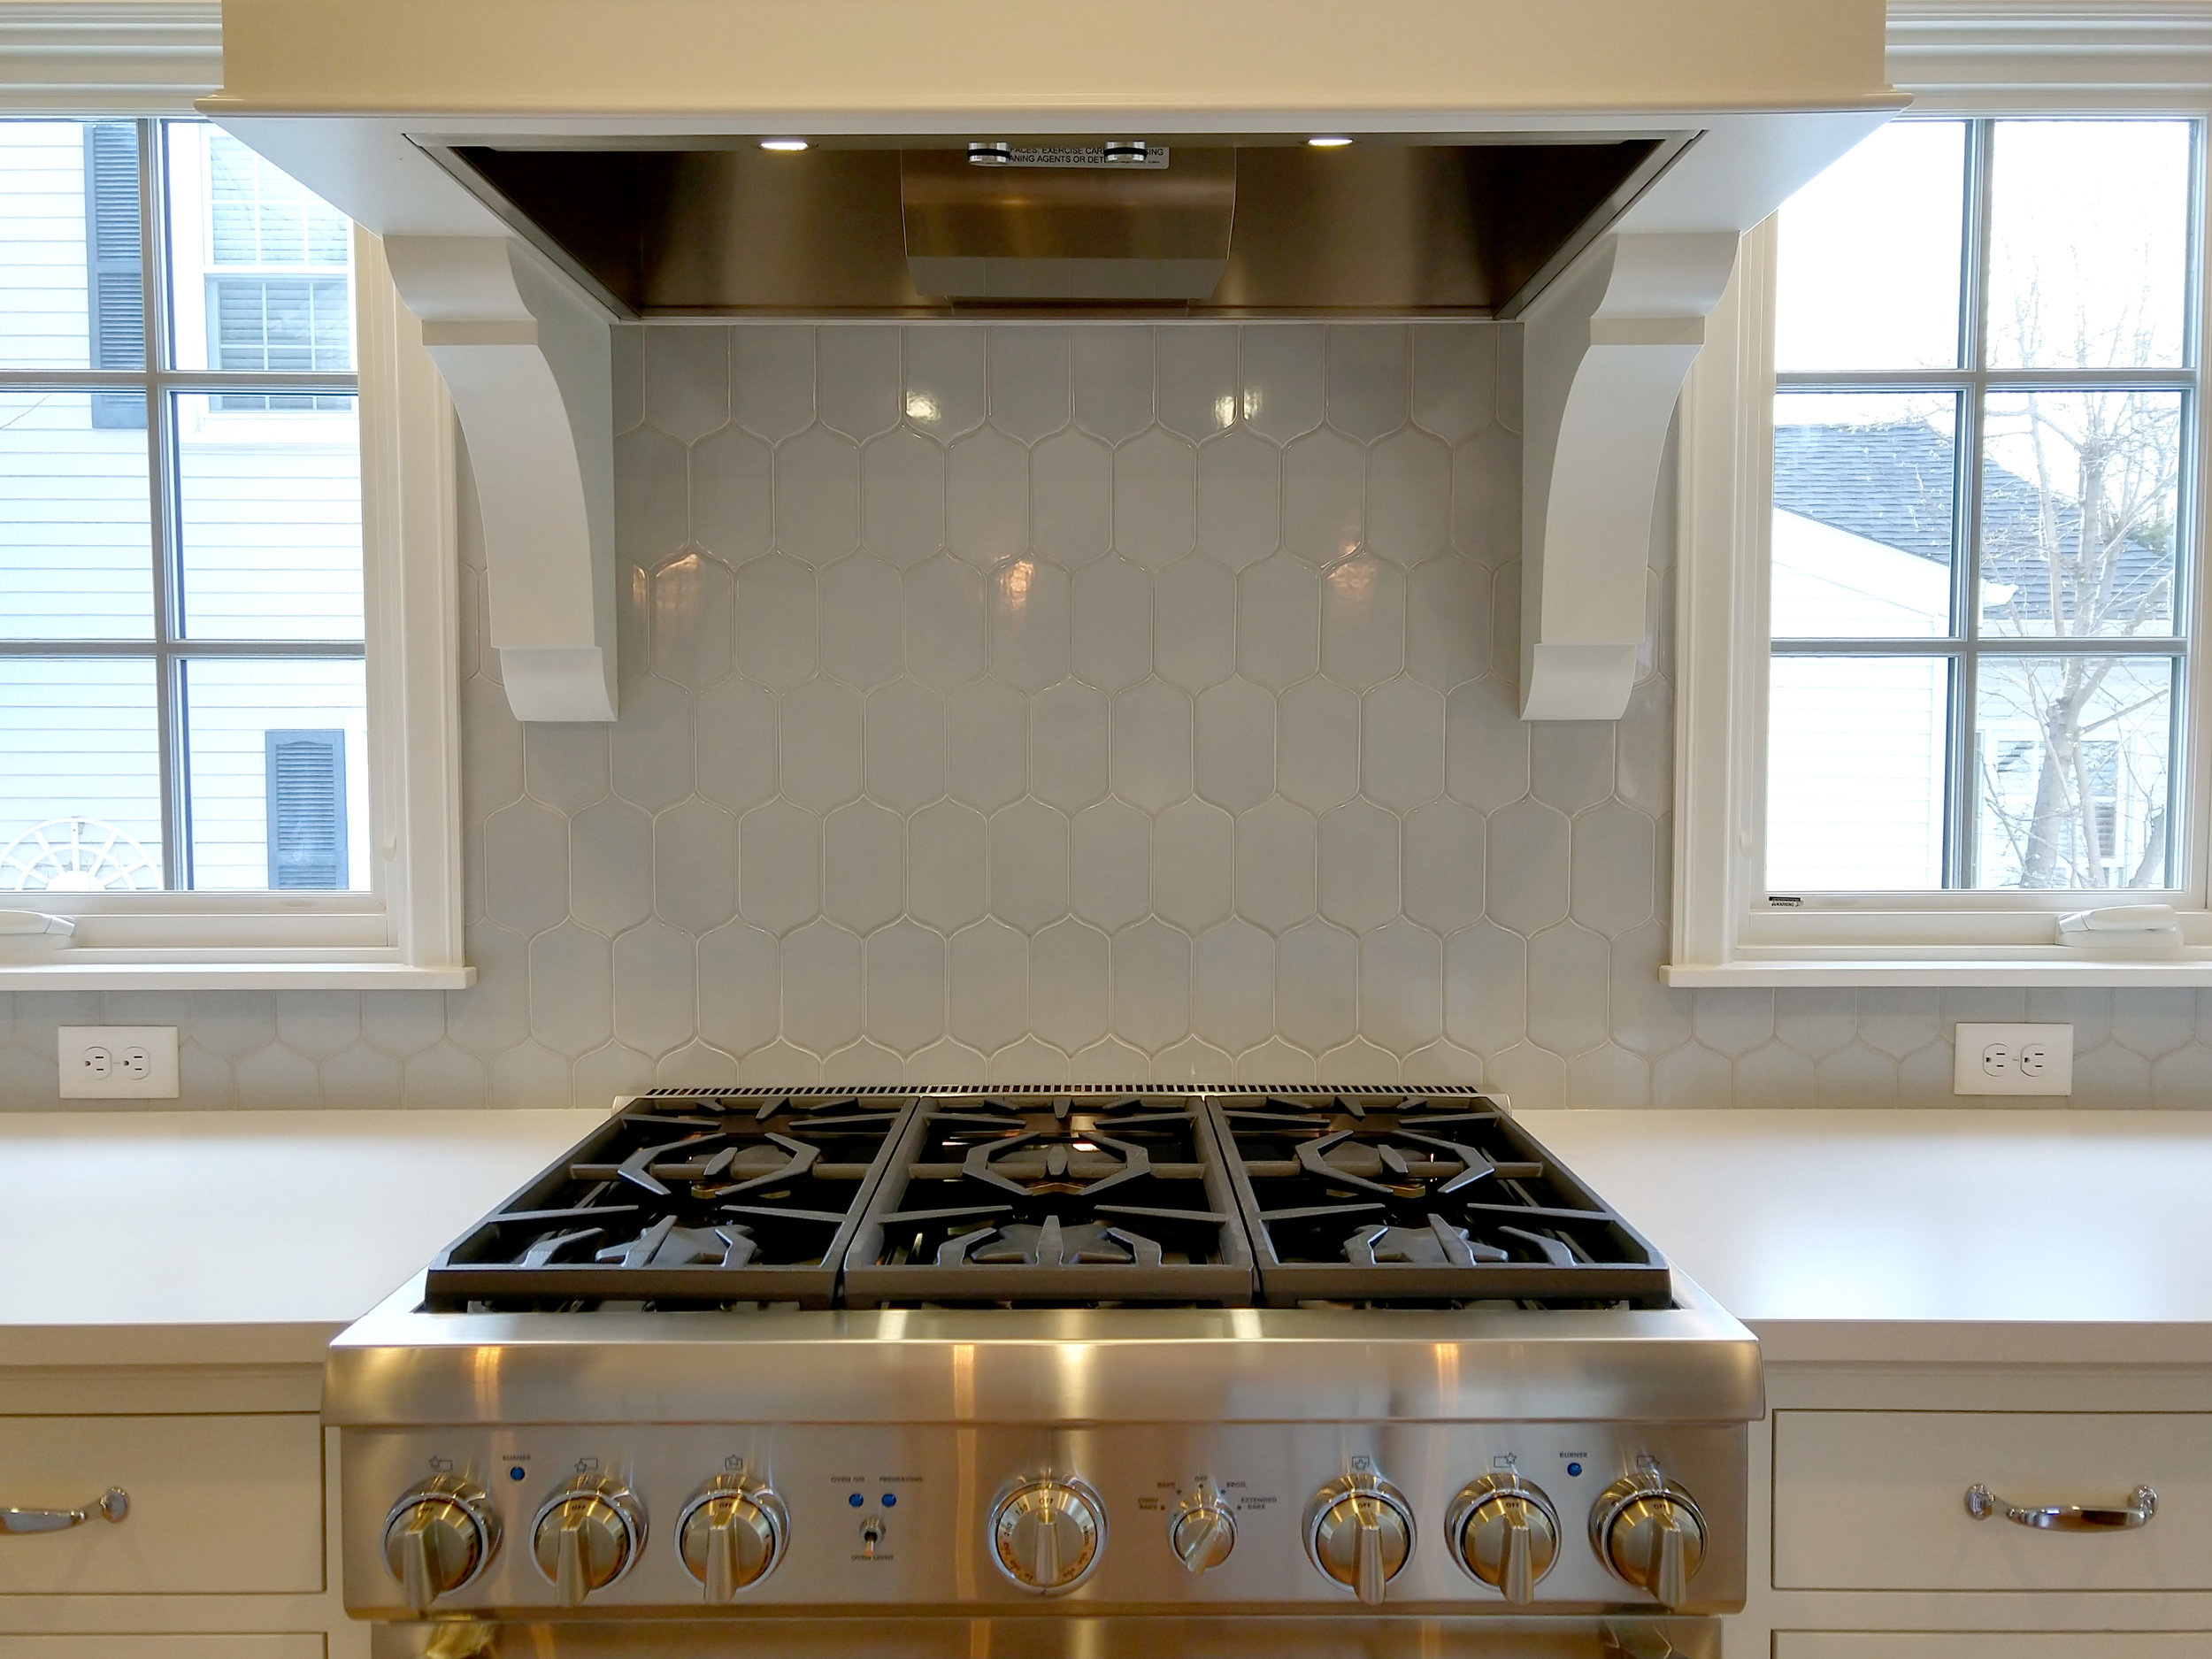 highland-park-kitchen-tile-and-hood-exhaust.jpg